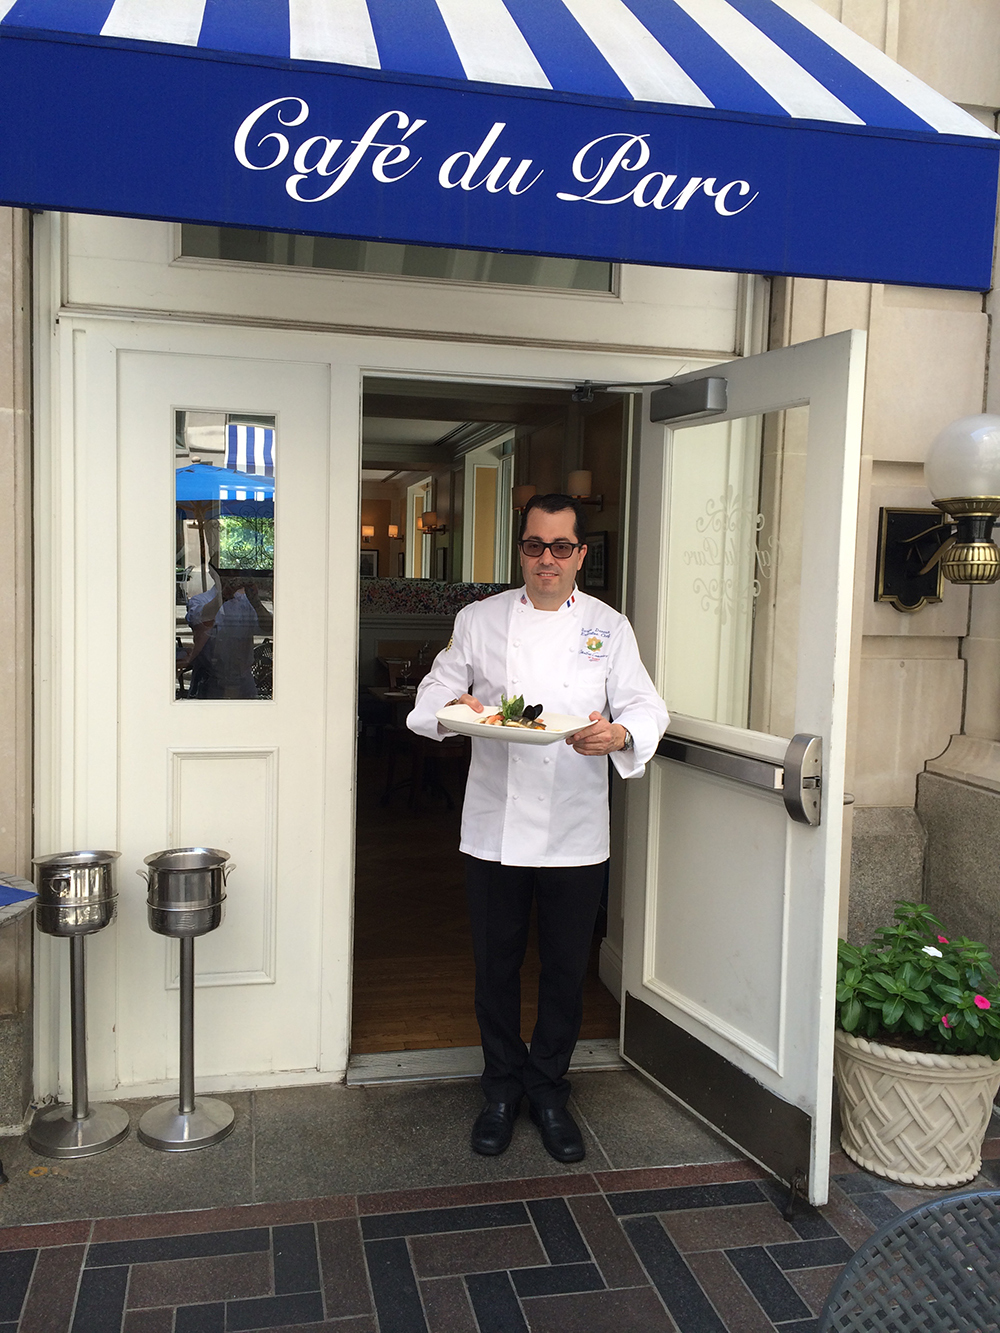 MCF Chef Serge Devesa at the entrance of Cafe du Park in Washington DC